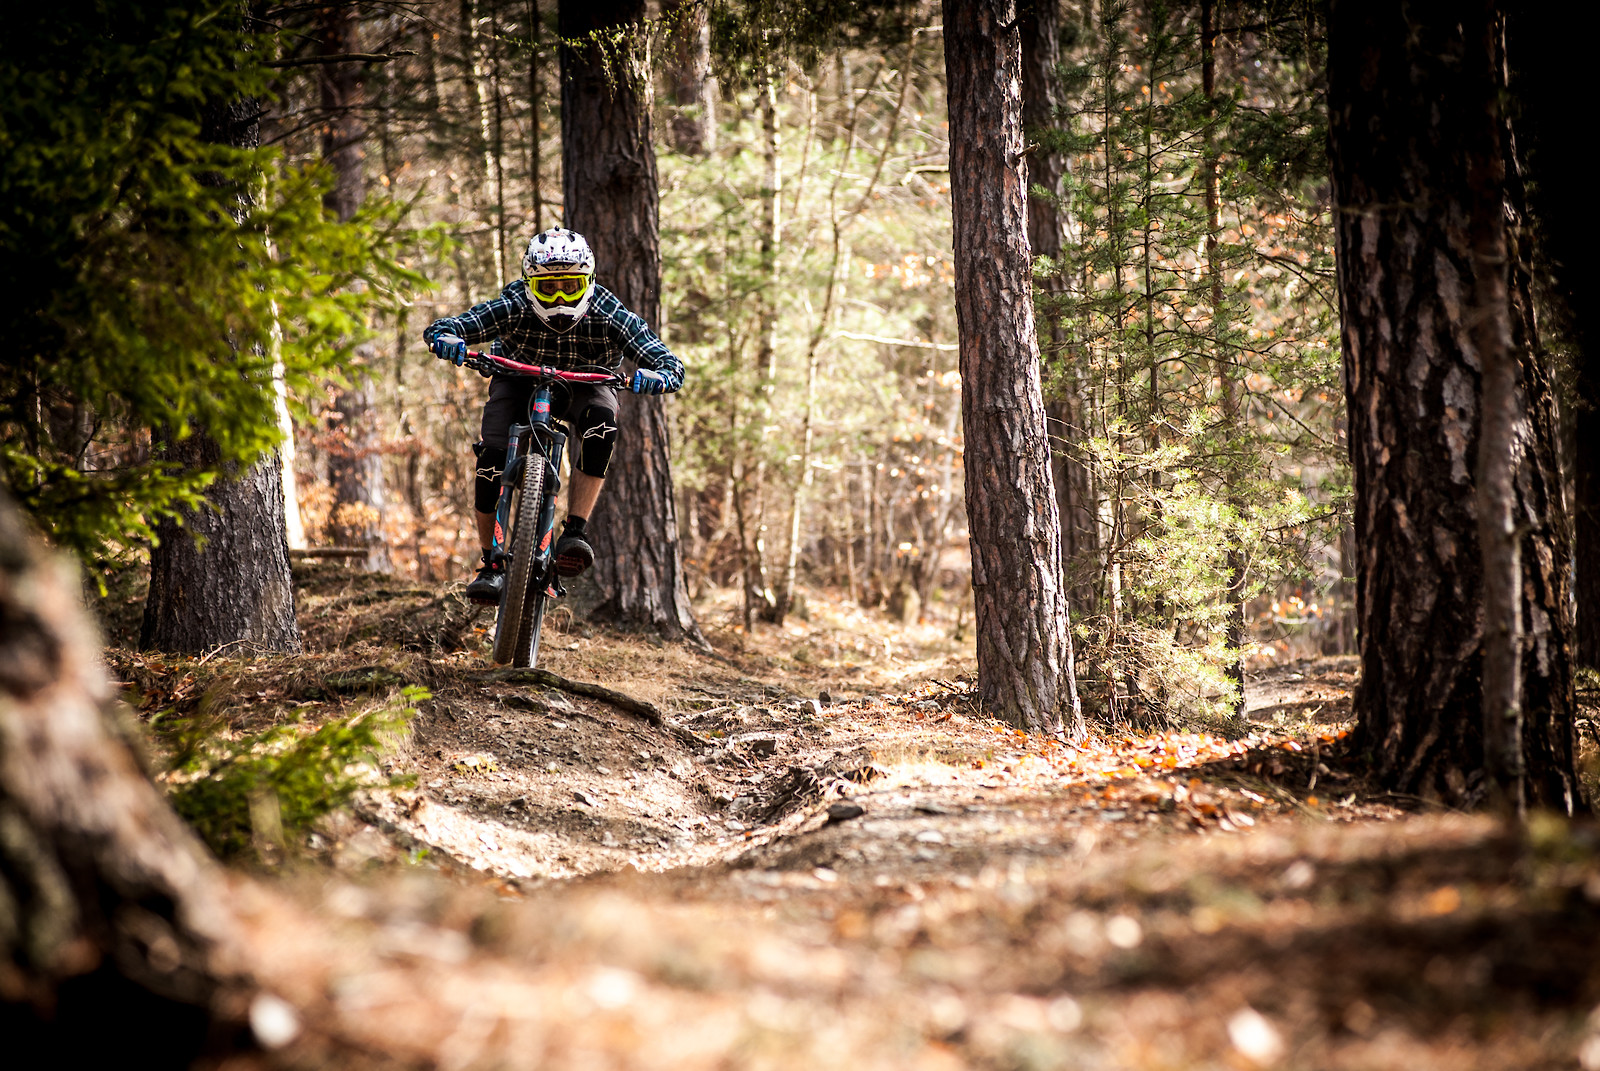 krompachy2019 (3 of 57) - purehell - Mountain Biking Pictures - Vital MTB